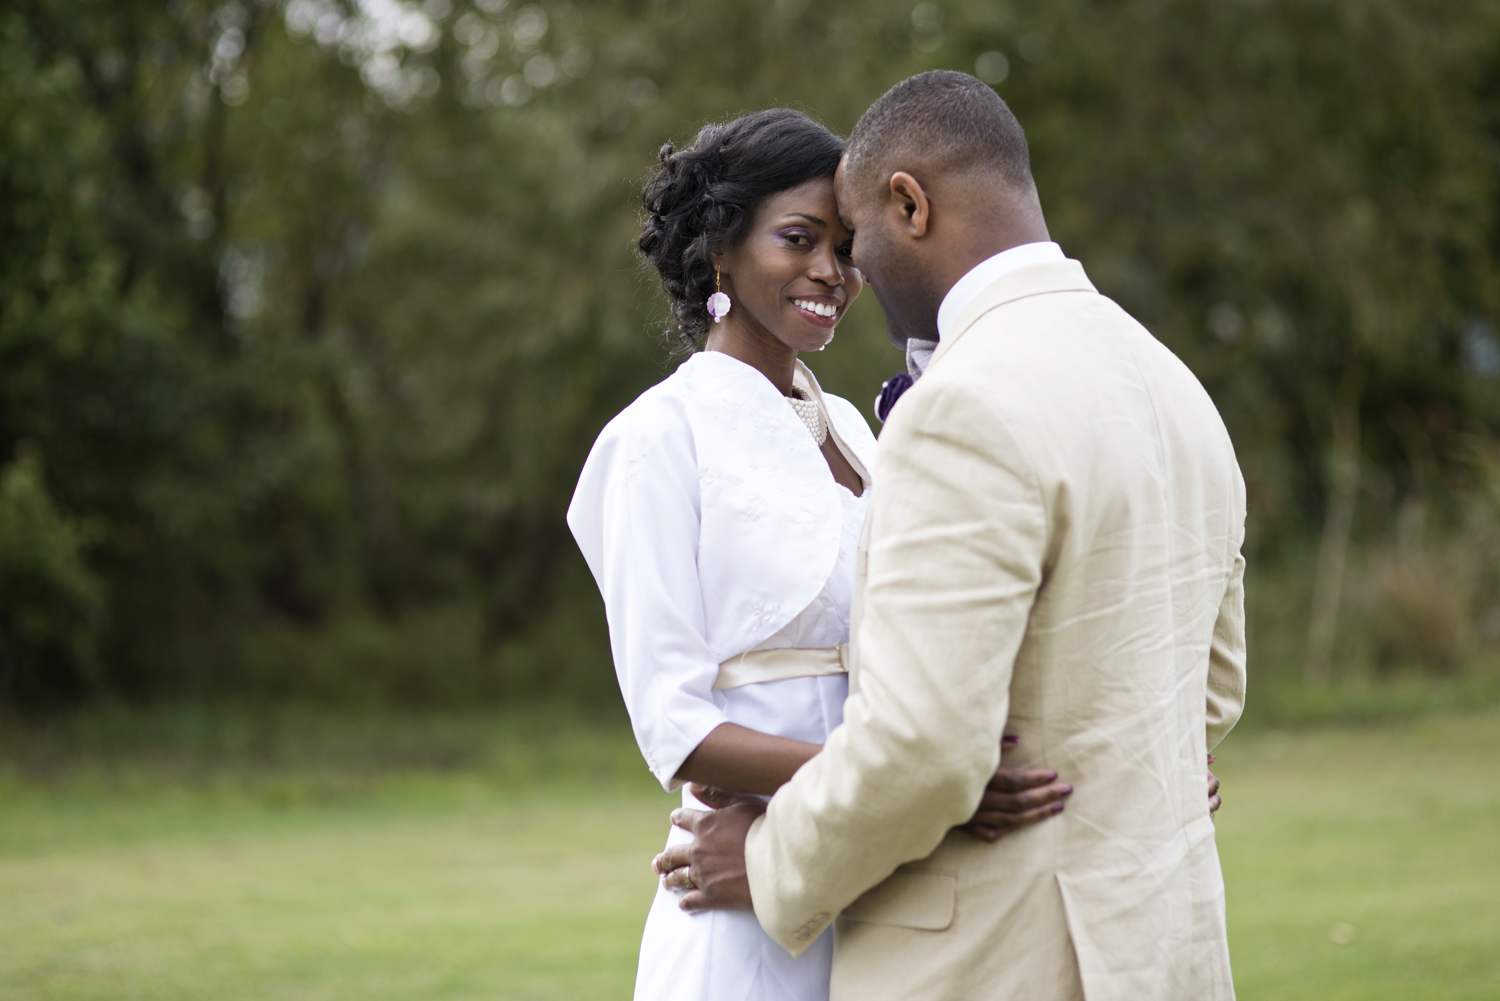 Bride and groom portraits at their October wedding in Chesapeake, Virginia